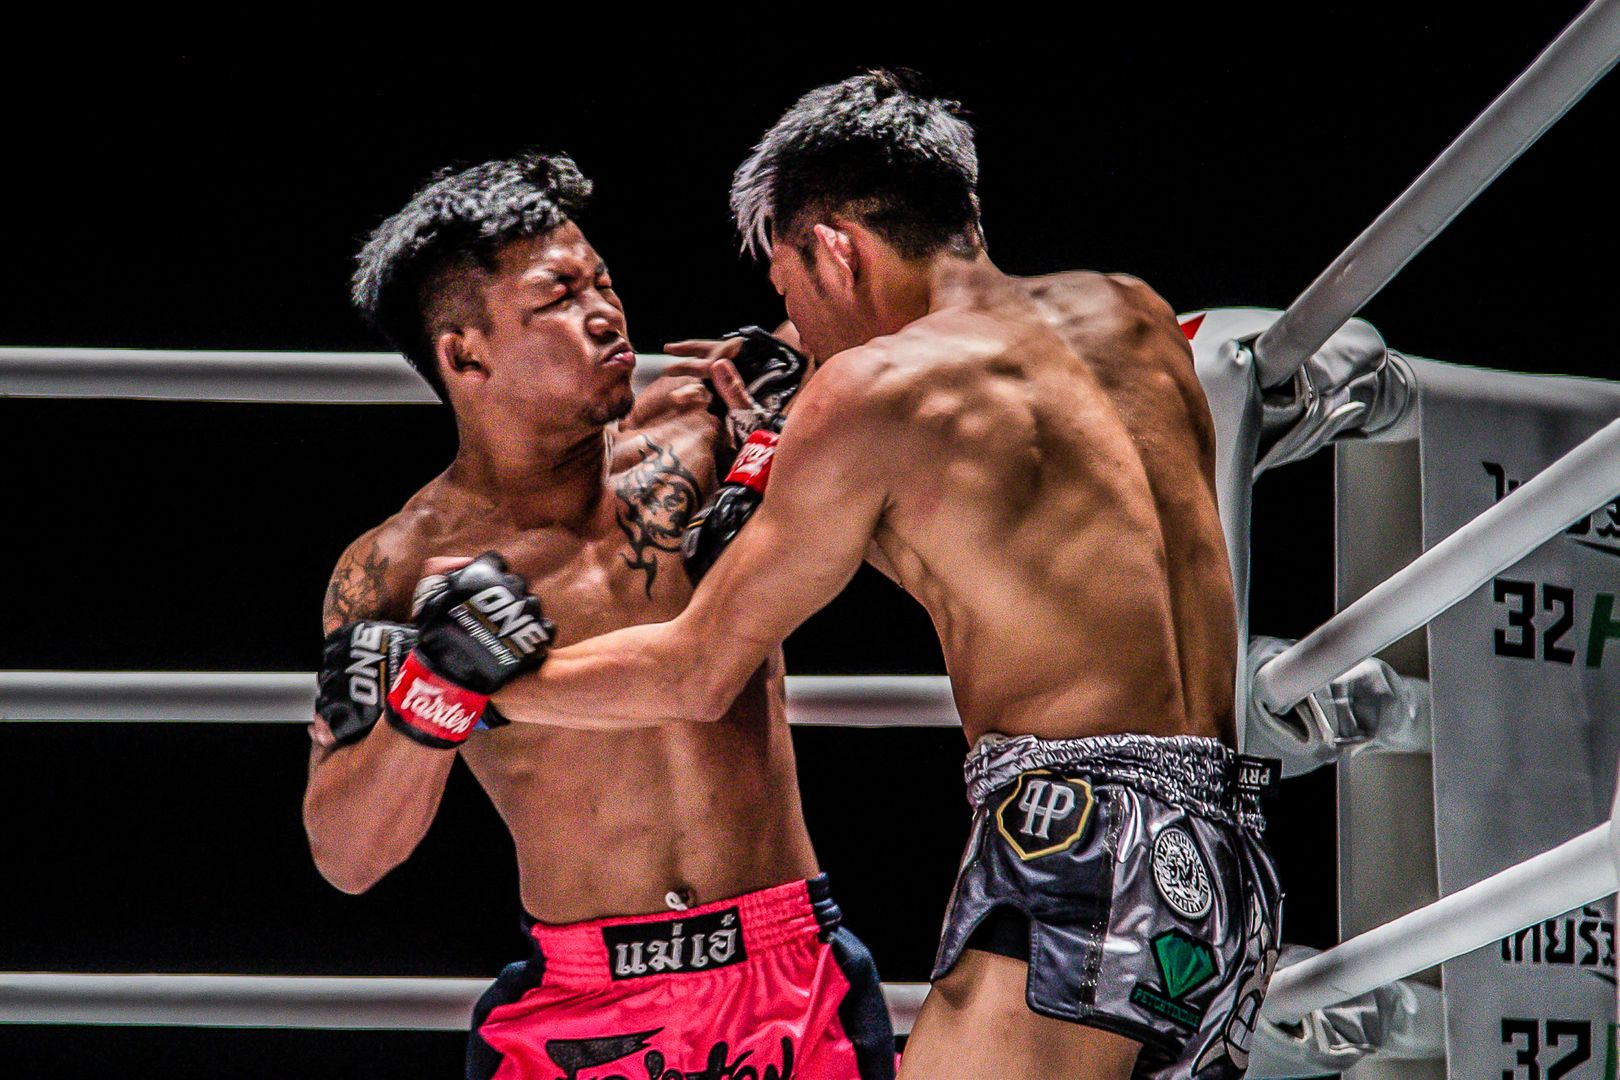 Muay Thai fighters Rodtang Jitmuangnon battles Petchdam Petchyindee Academy in a trilogy